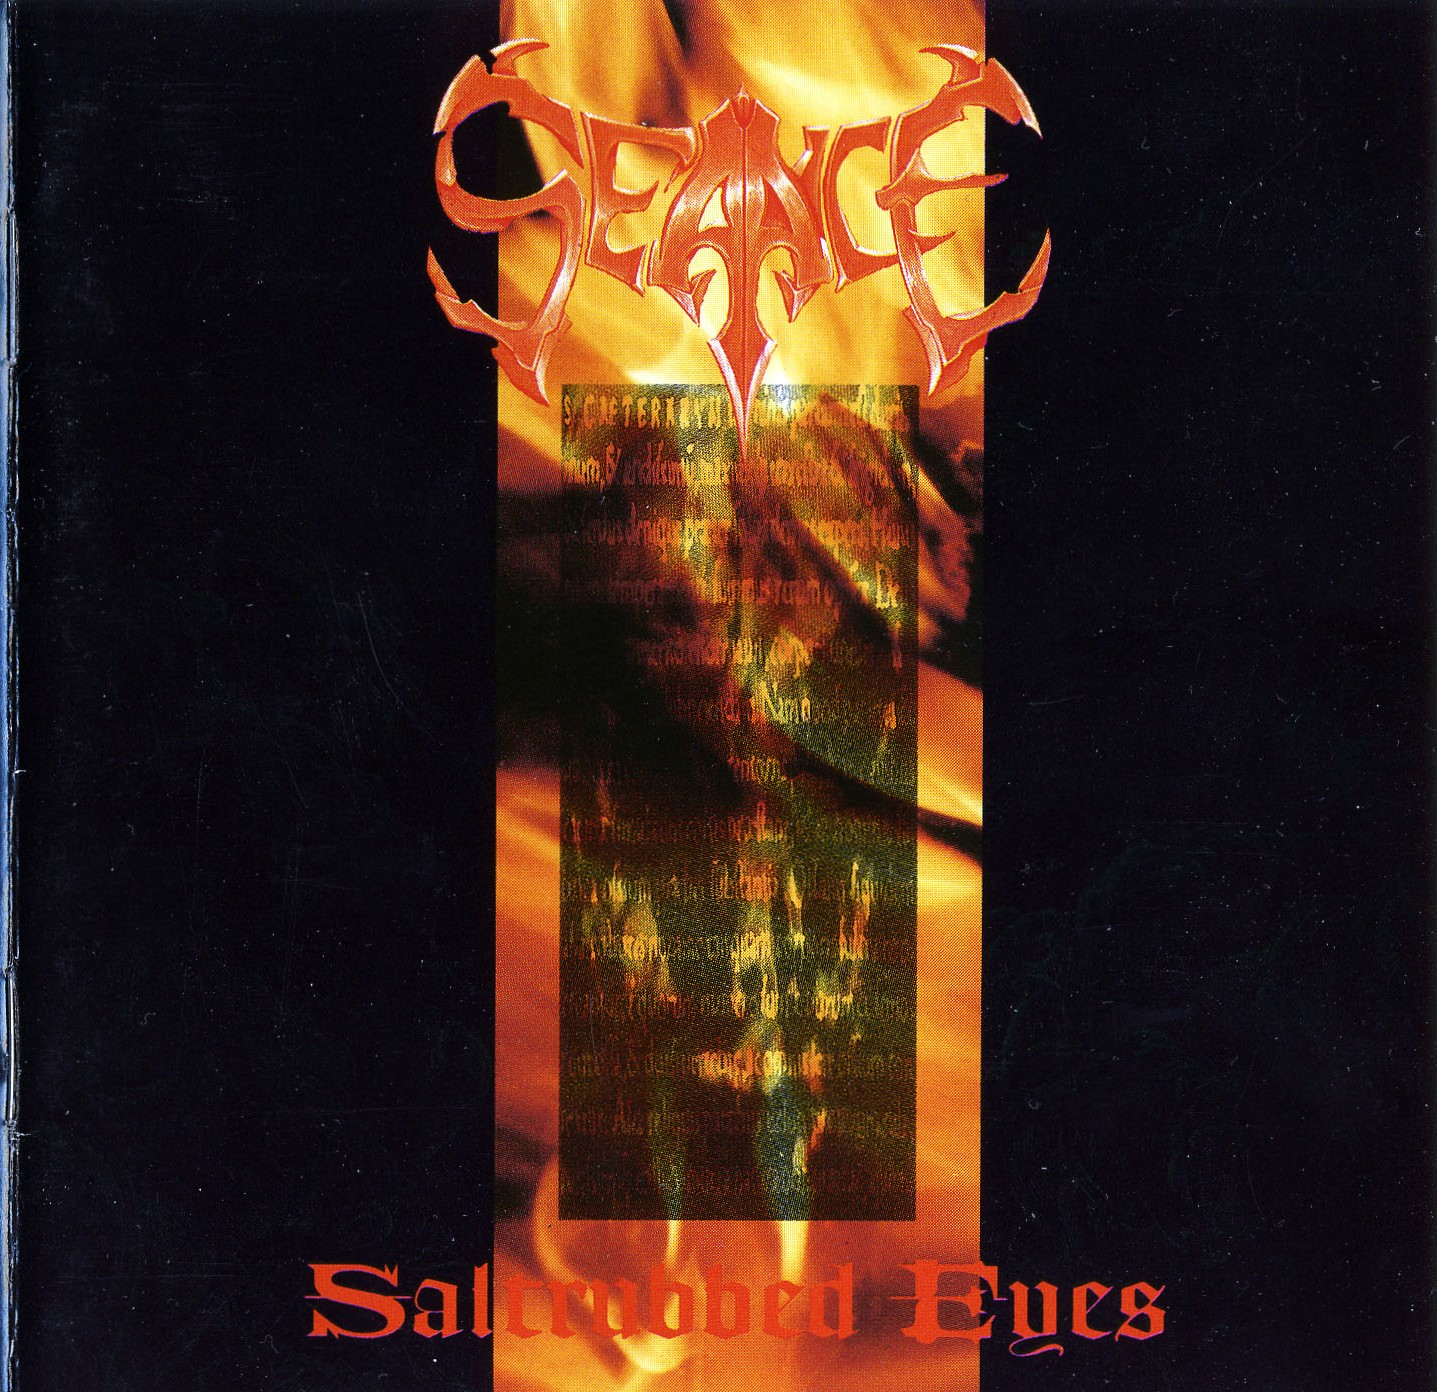 Seance - Saltrubbed Eyes - 1993